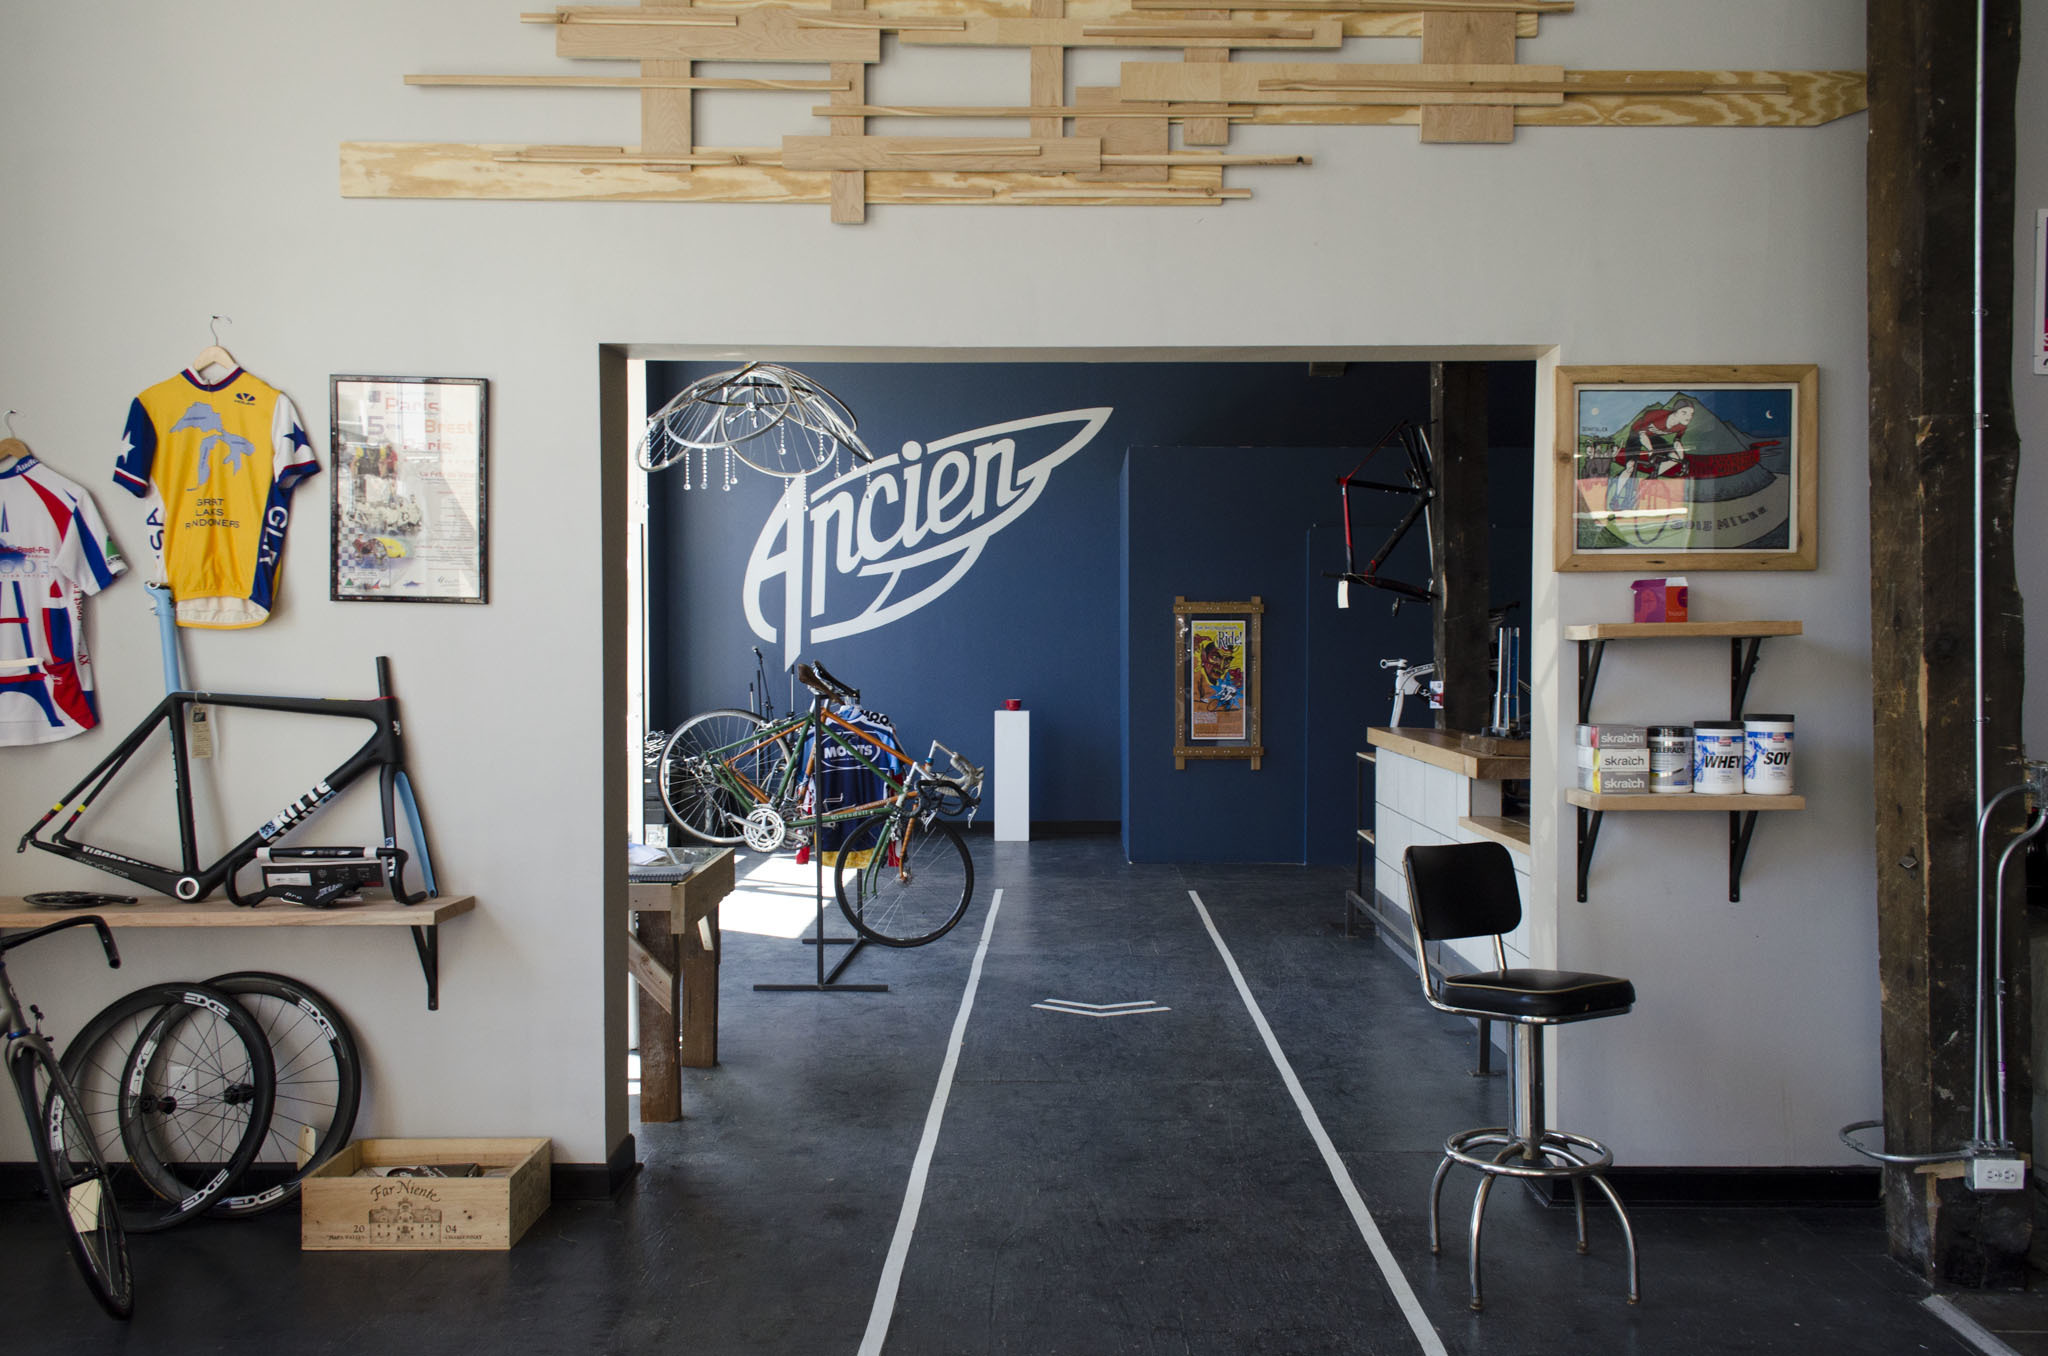 Ancien Cycles is located at 688 N Milwaukee Ave.